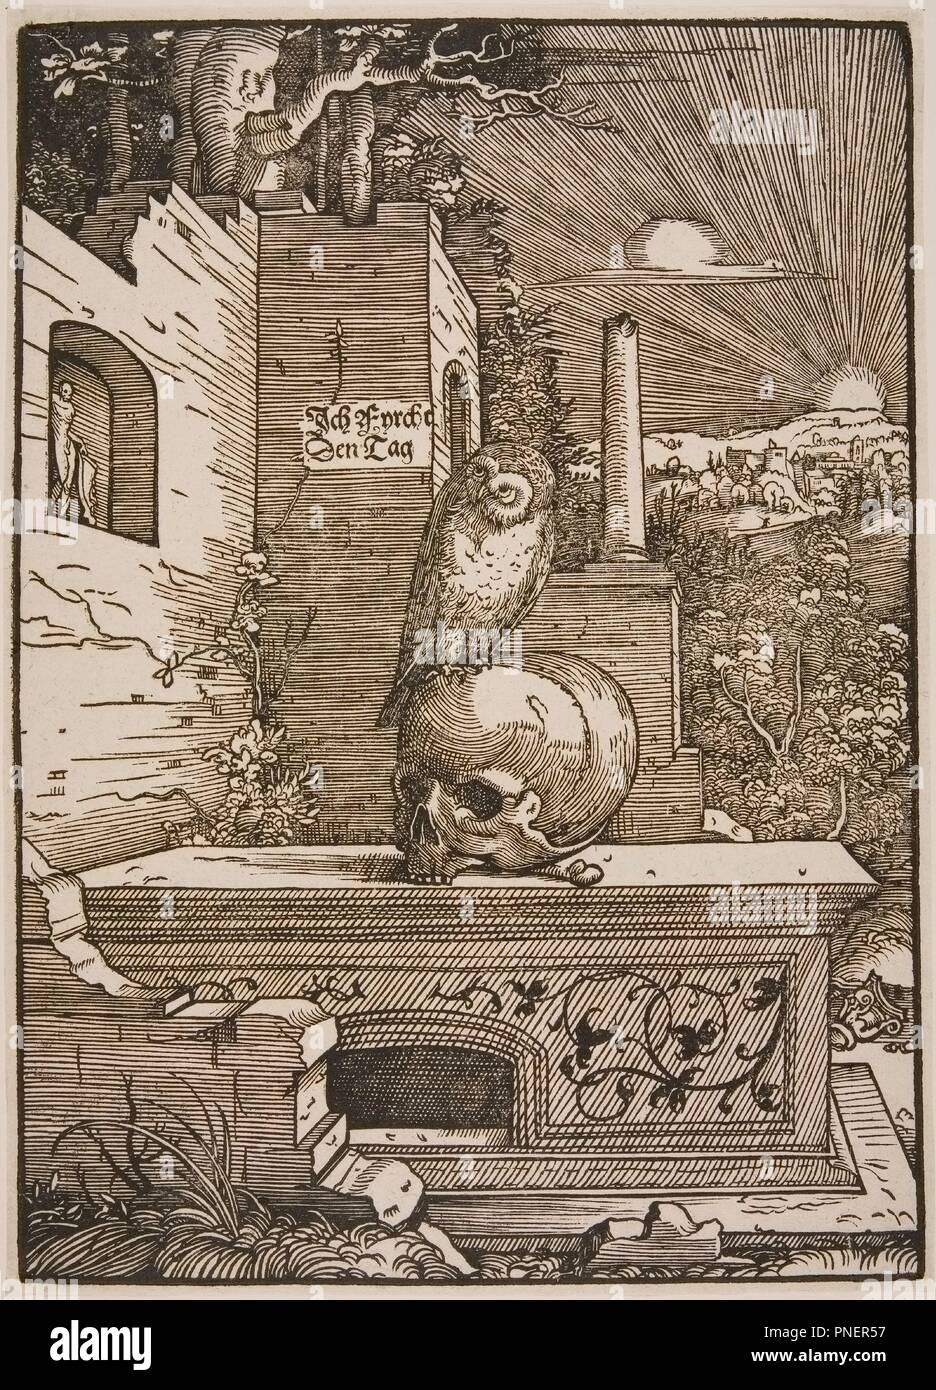 Allegory with an Owl. Date/Period: 16th century. Woodcut. Author: HANS WECHTLIN. - Stock Image